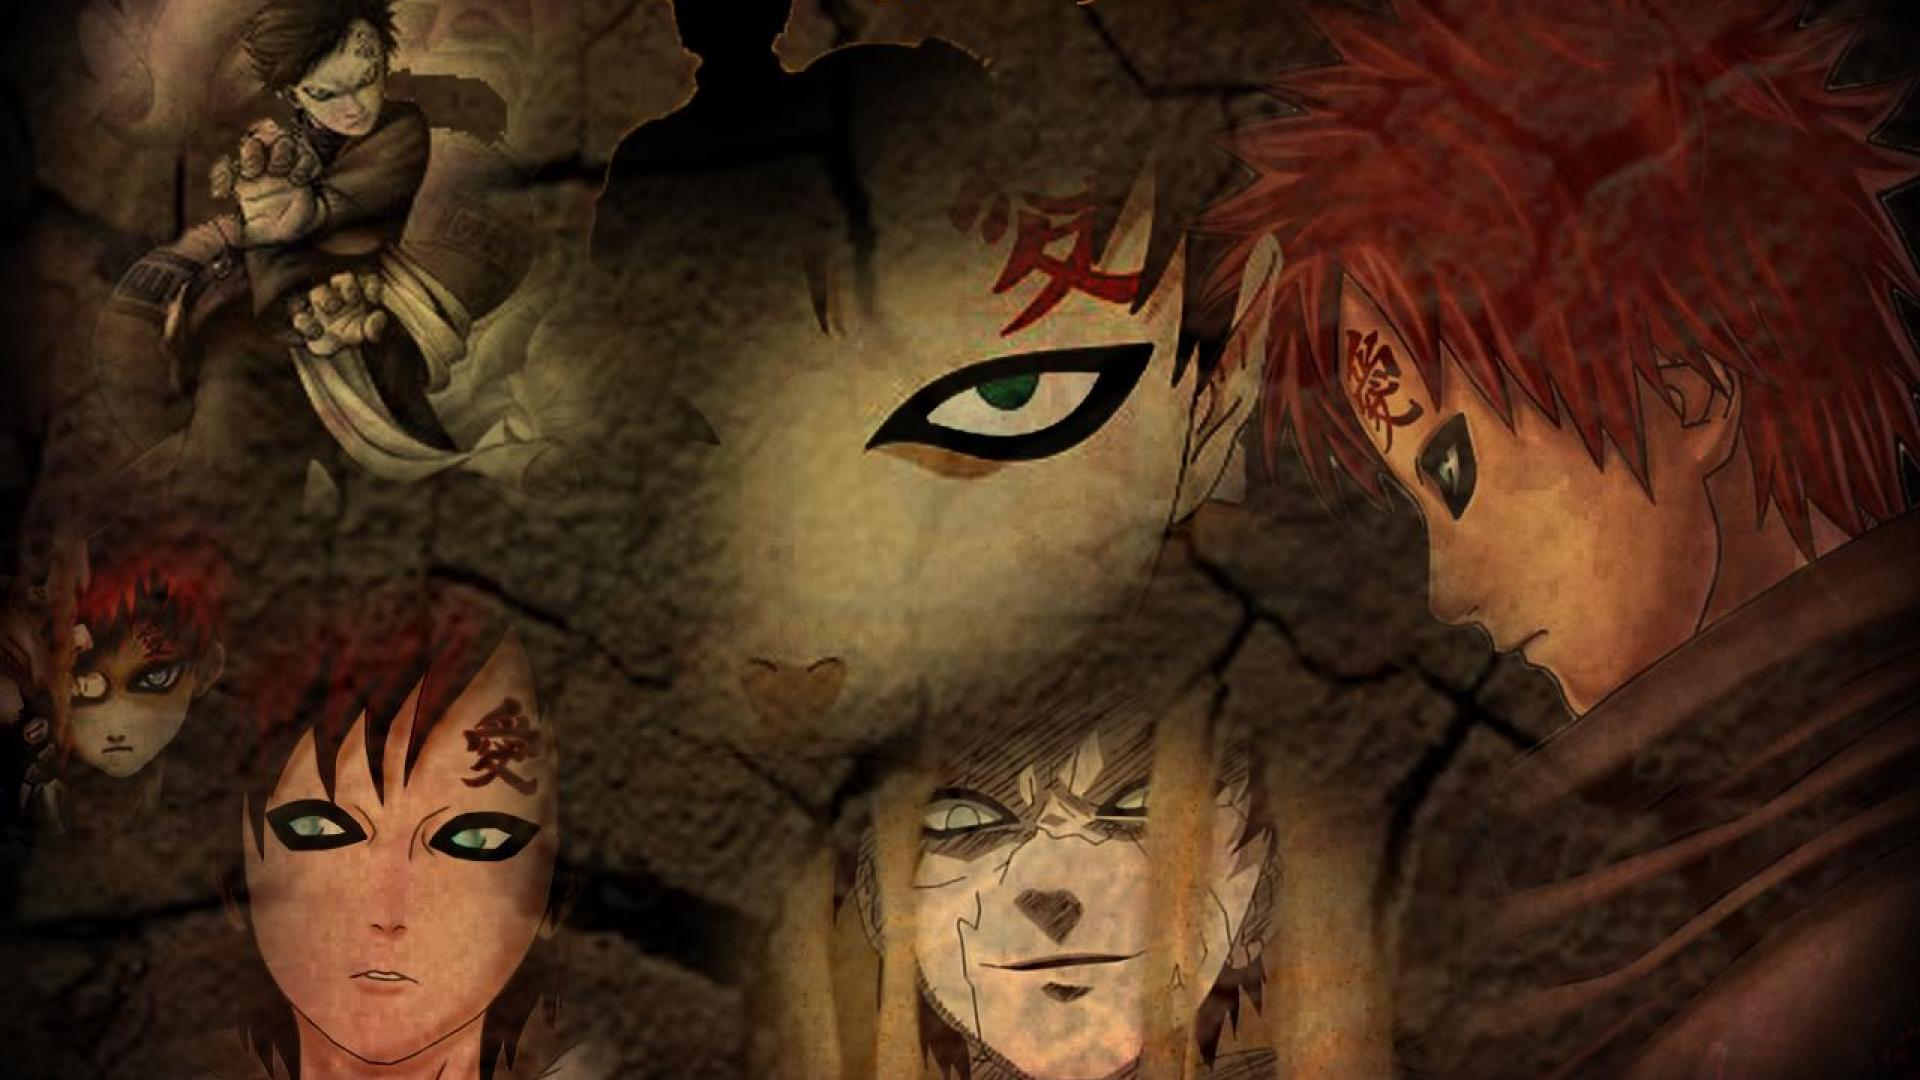 Gaara of the sand   134119   High Quality and Resolution Wallpapers 1920x1080